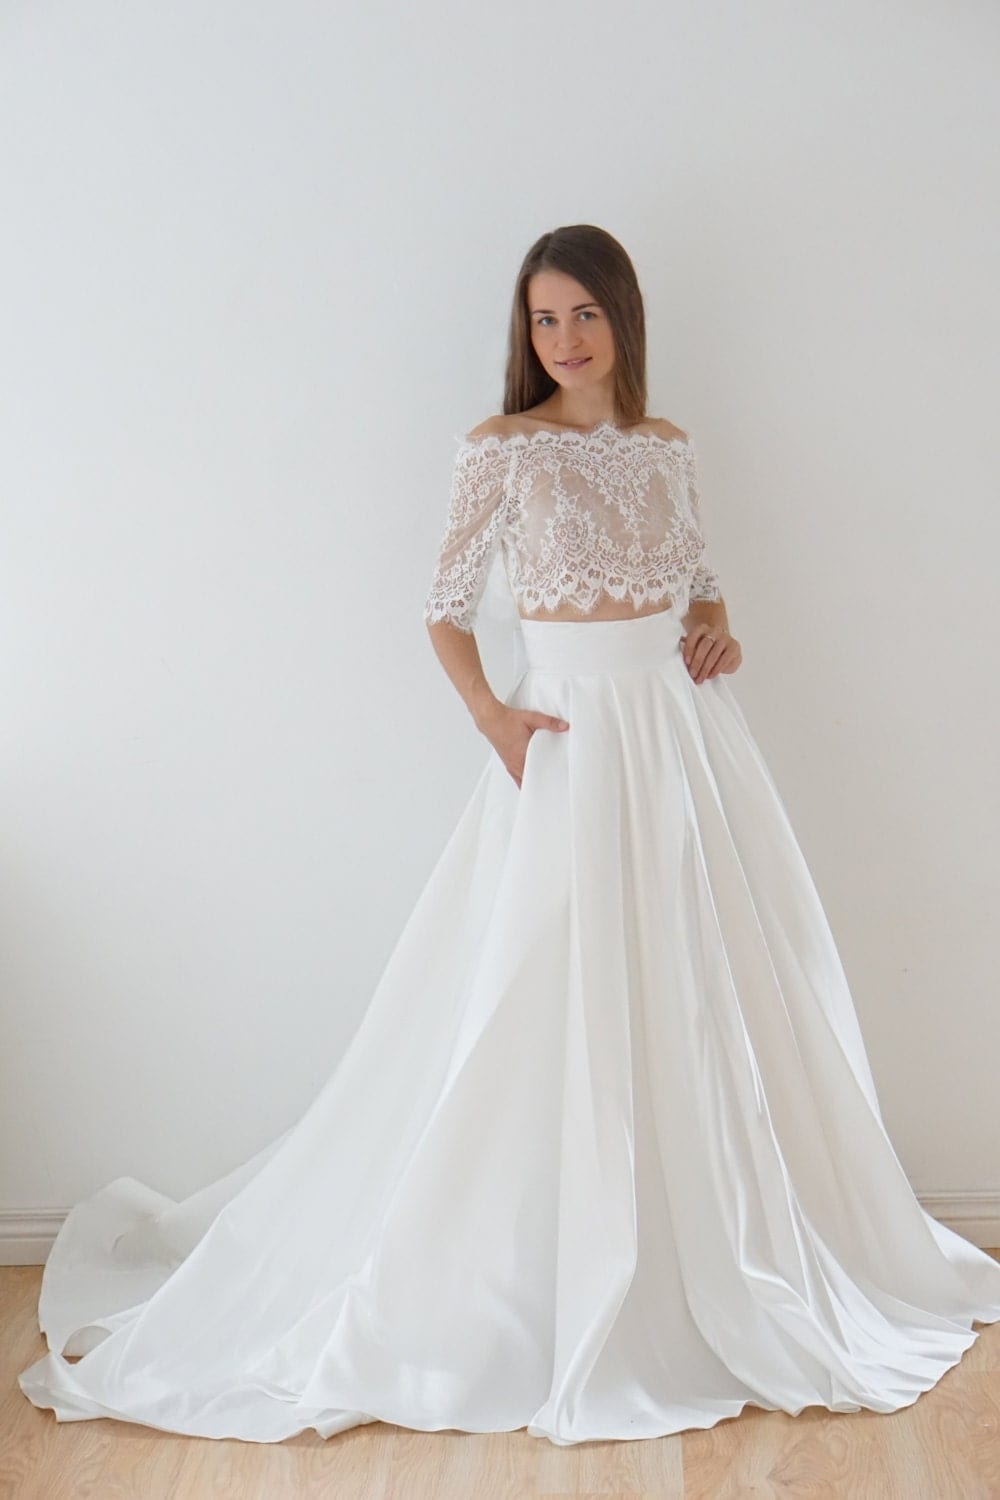 Crop top wedding dress satin wedding dress lace top lace for Best lace wedding dresses